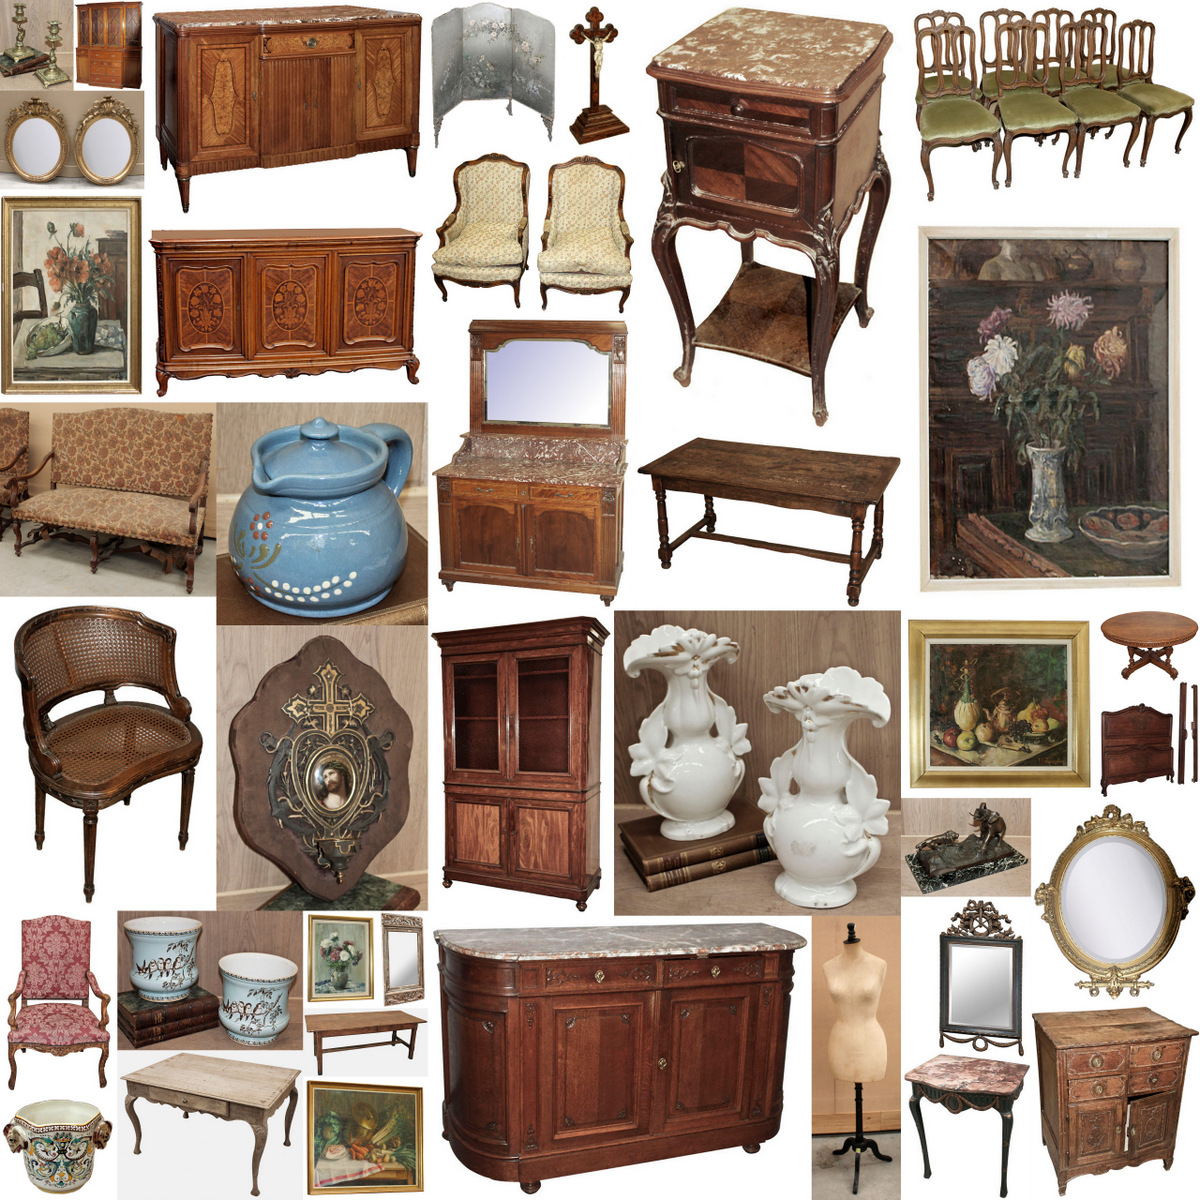 Antique Furniture and Accessories New Arrivals-Baton Rouge - Antique Shipments ~ Amazing New Finds From Our Latest Buying Trips